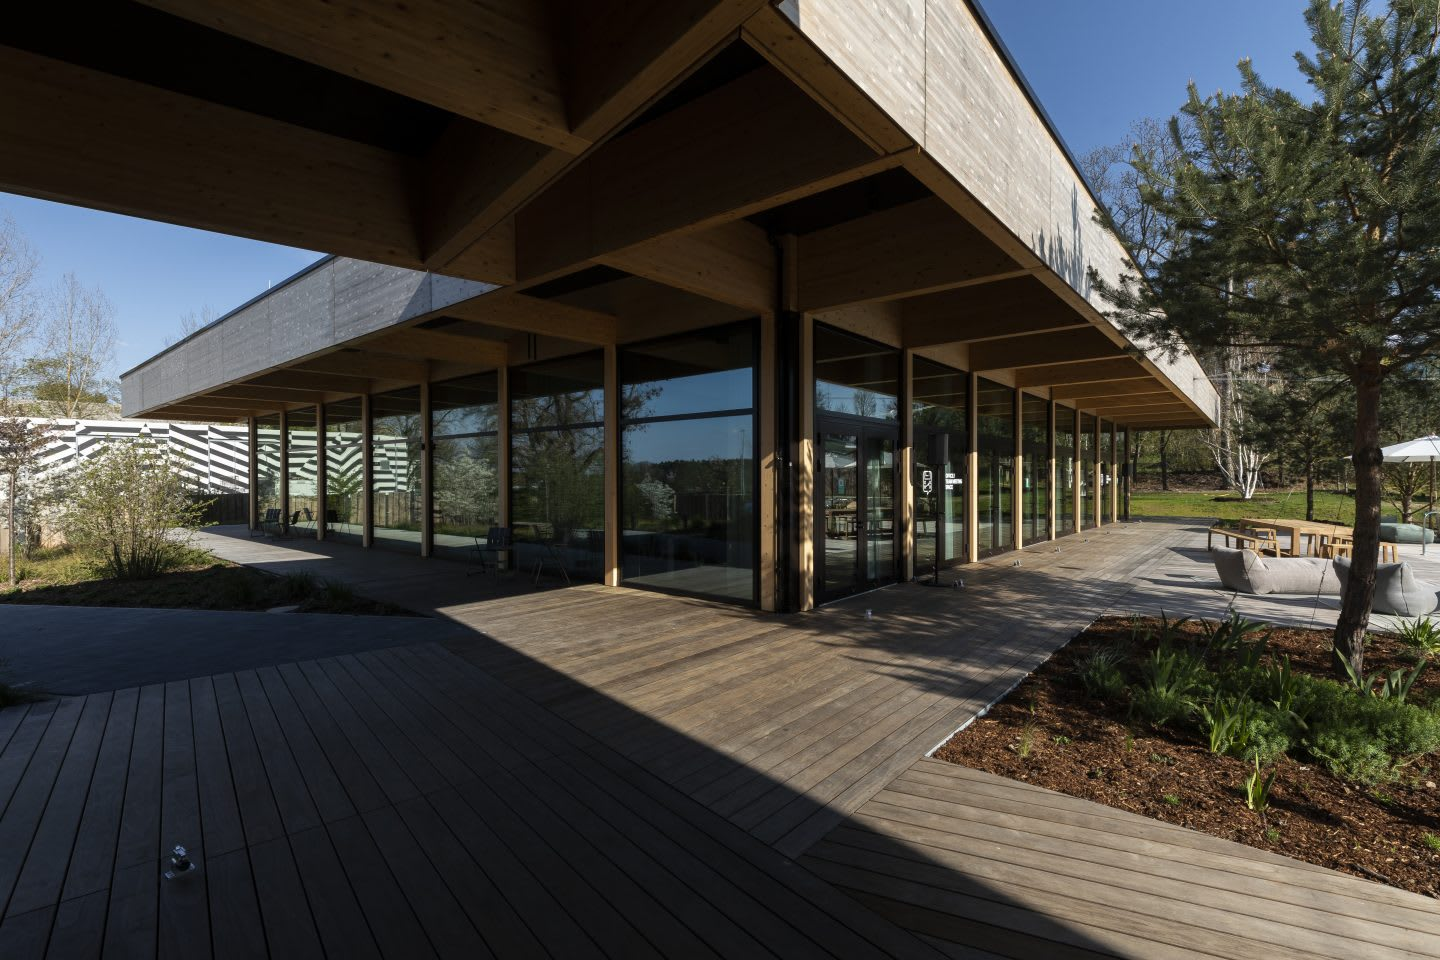 Image of low-rise building with wooden paths, HOMEGROUND, adidas, HQ, headquarters, Herzogenaurach, Germany